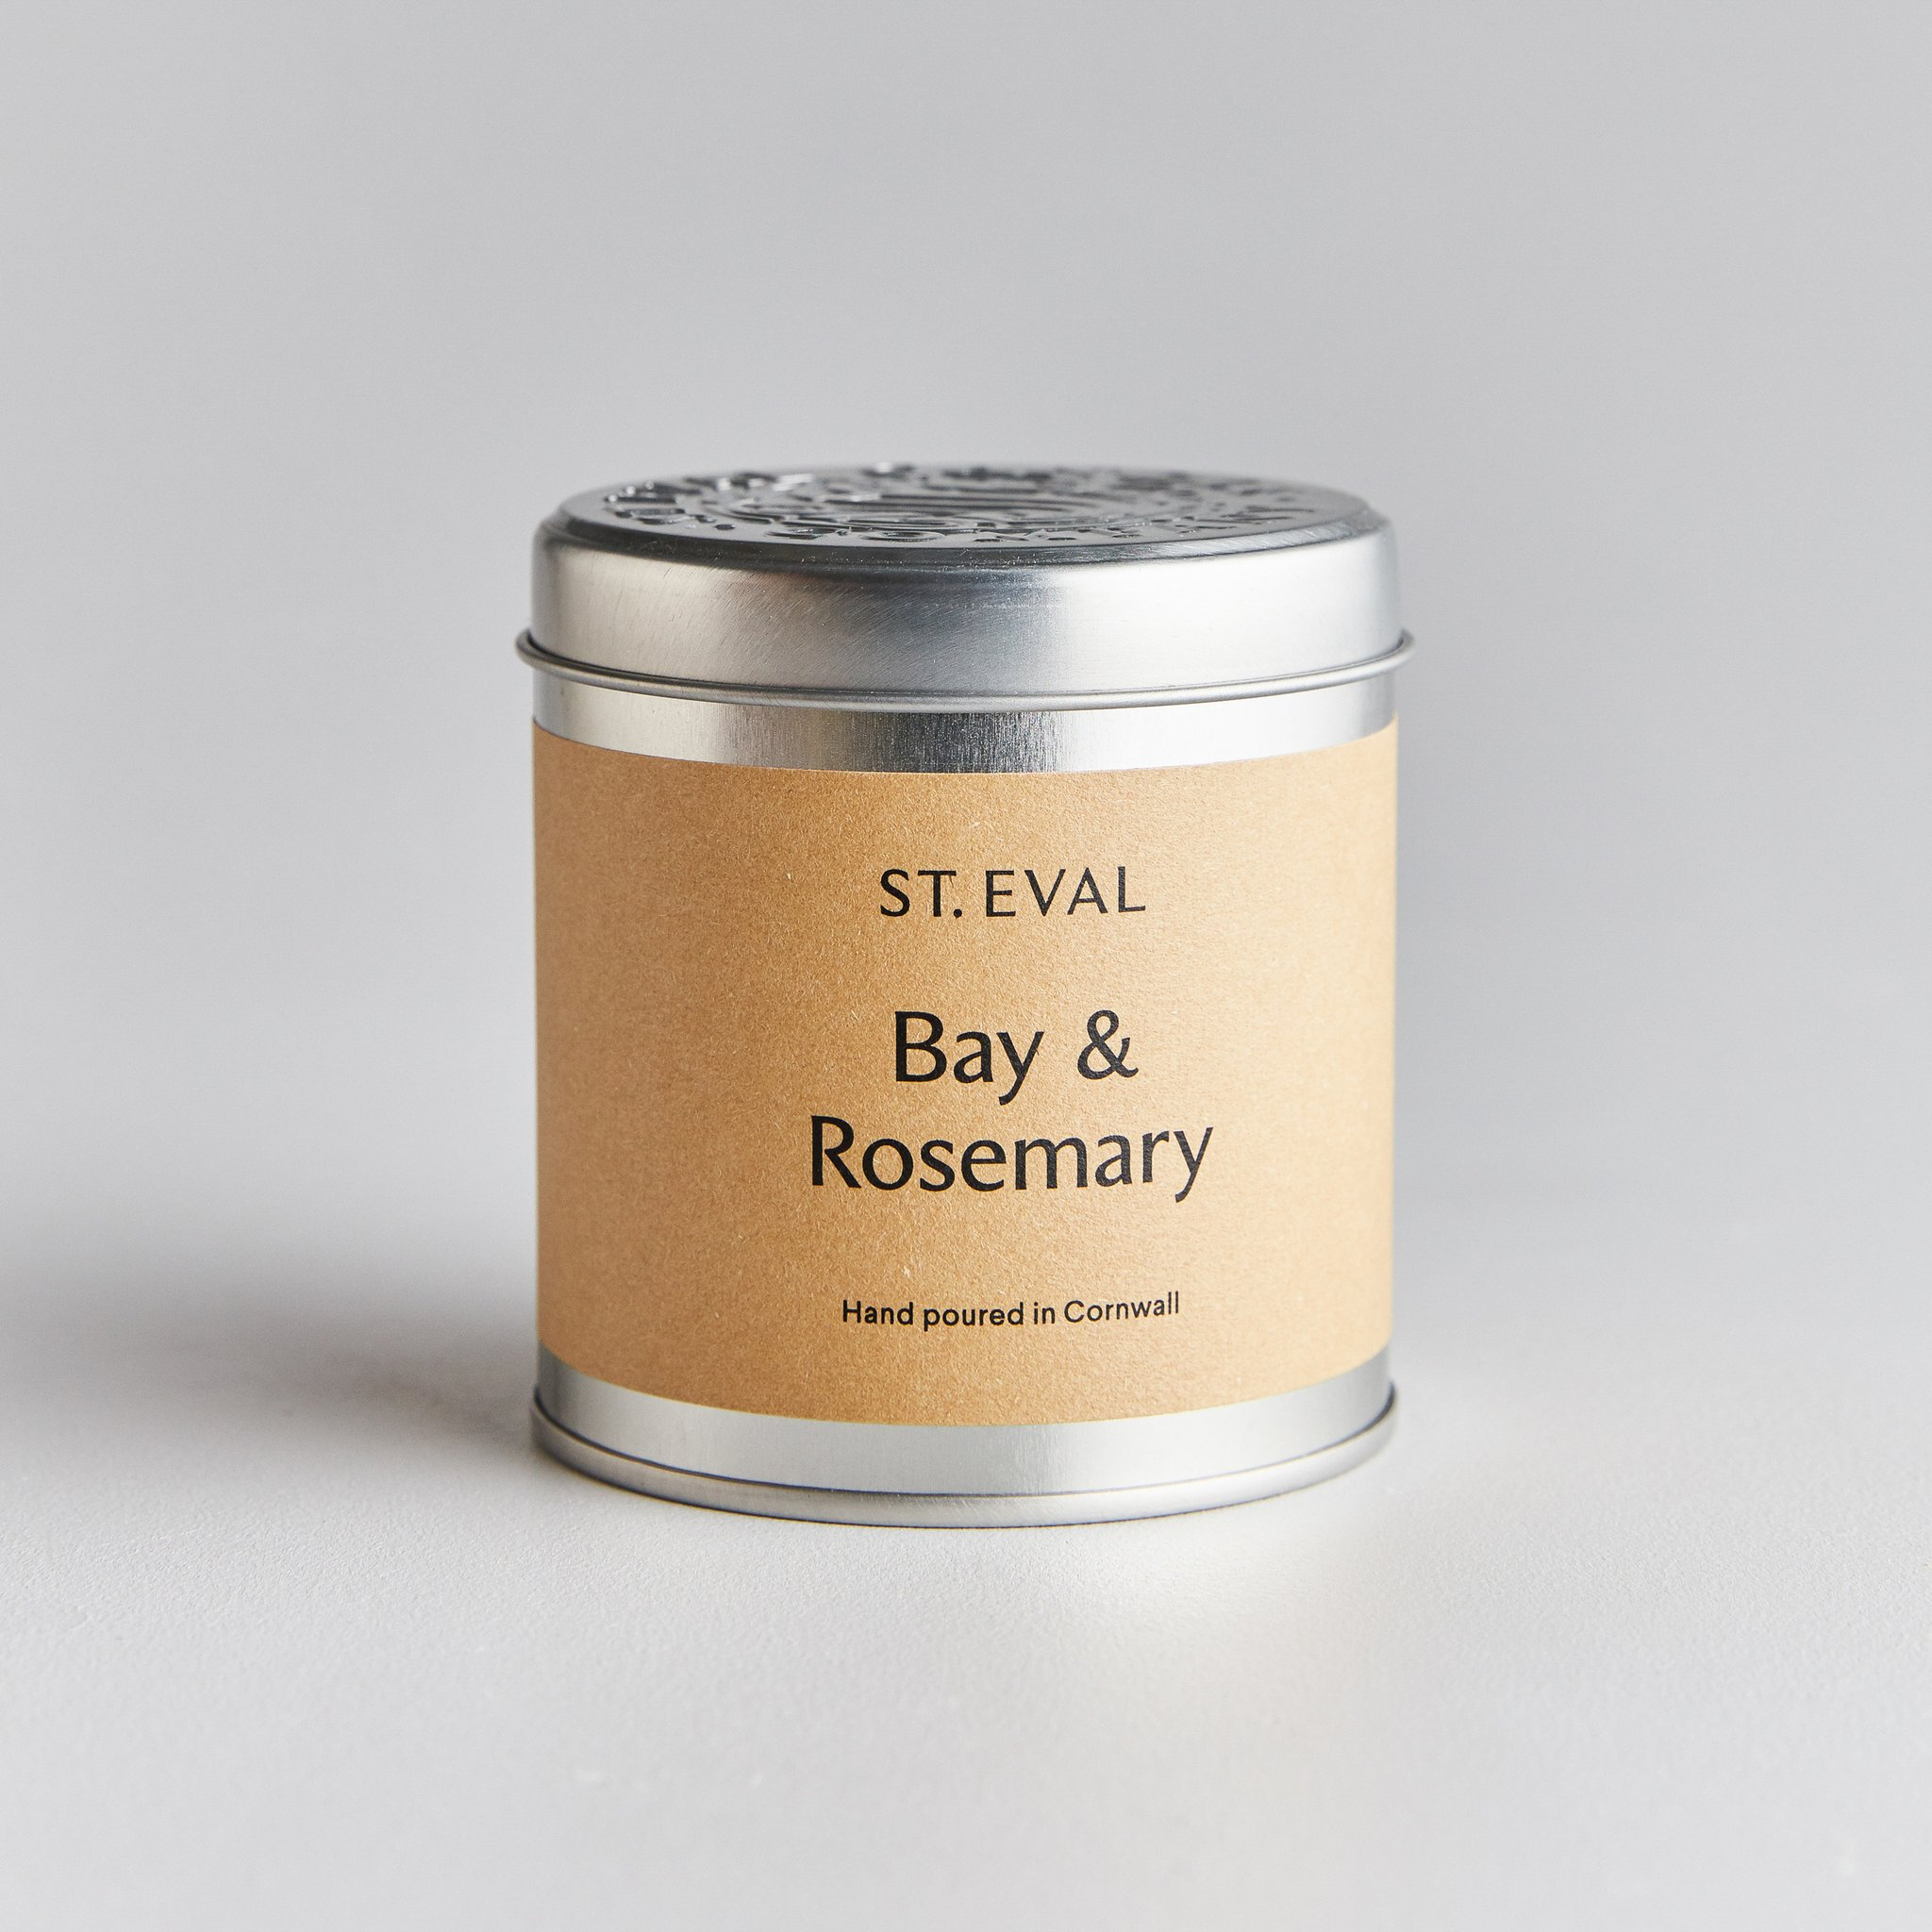 St Eval Candle Tin - Bay & Rosemary